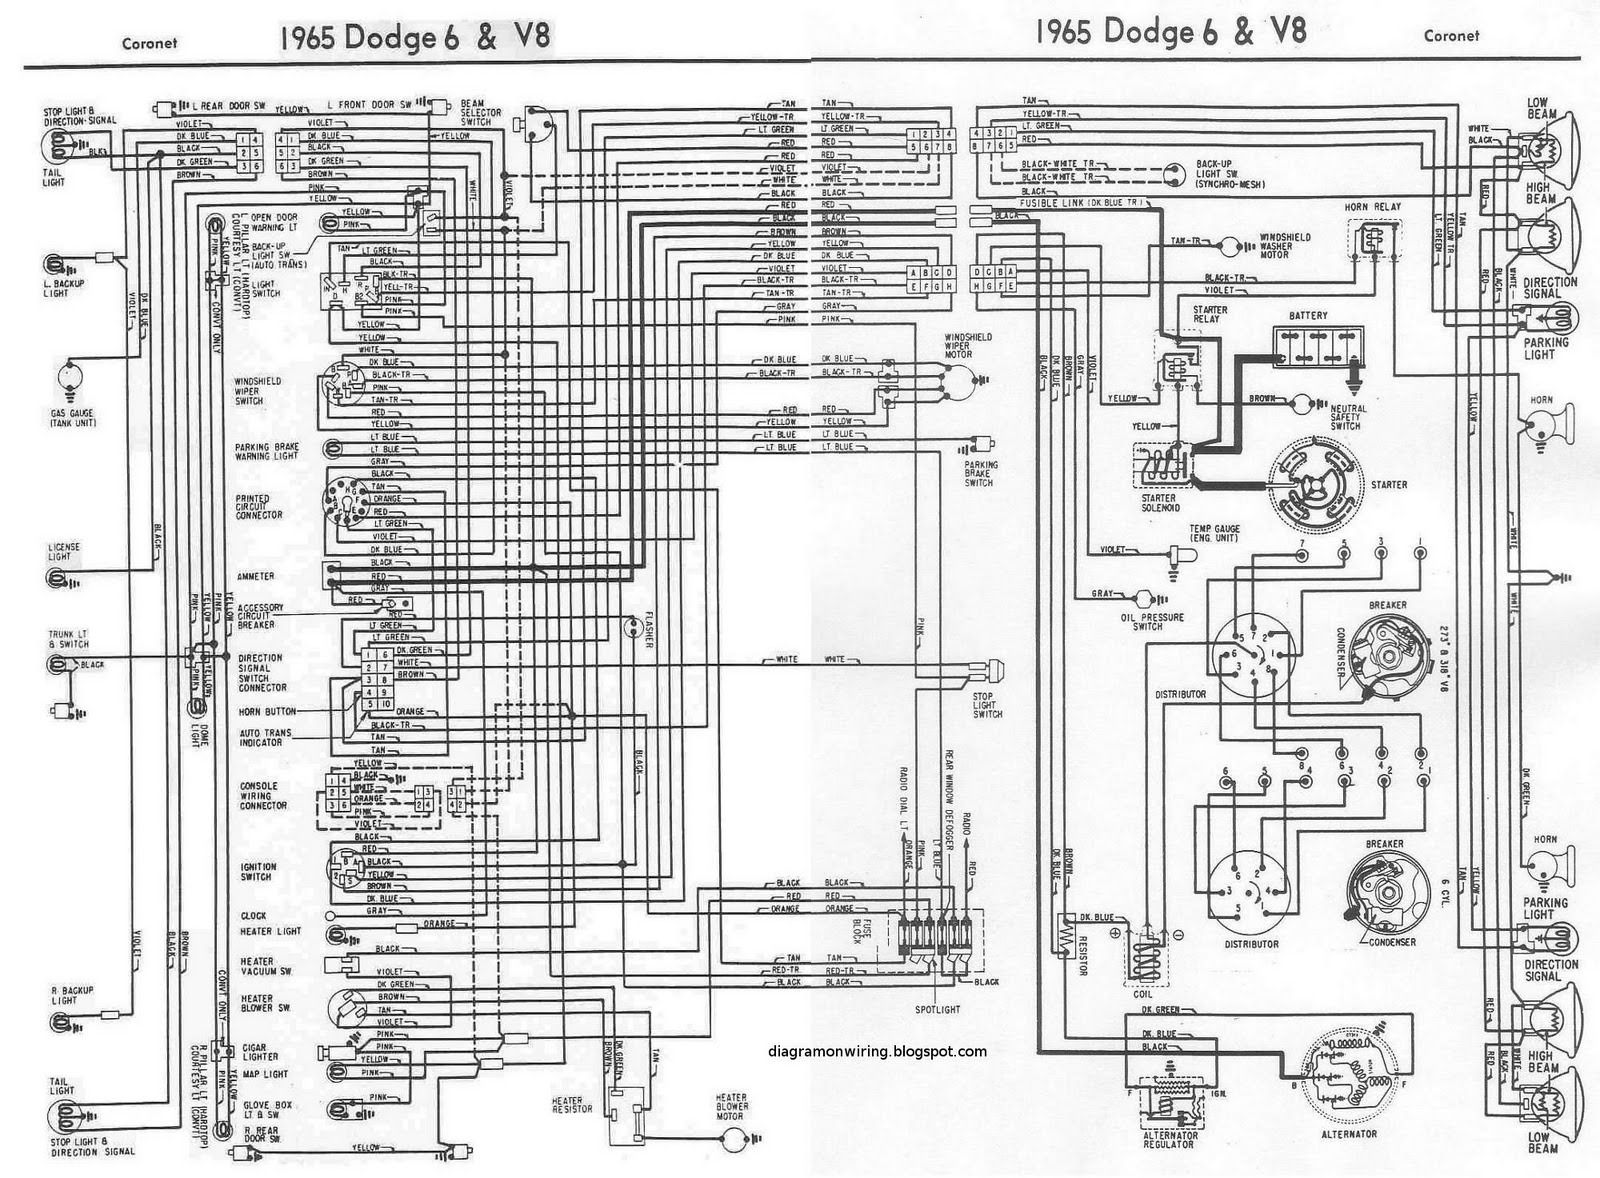 small resolution of wiring diagram for 1966 dodge coronet wiring diagram expert wiring diagram for 1966 dodge coronet